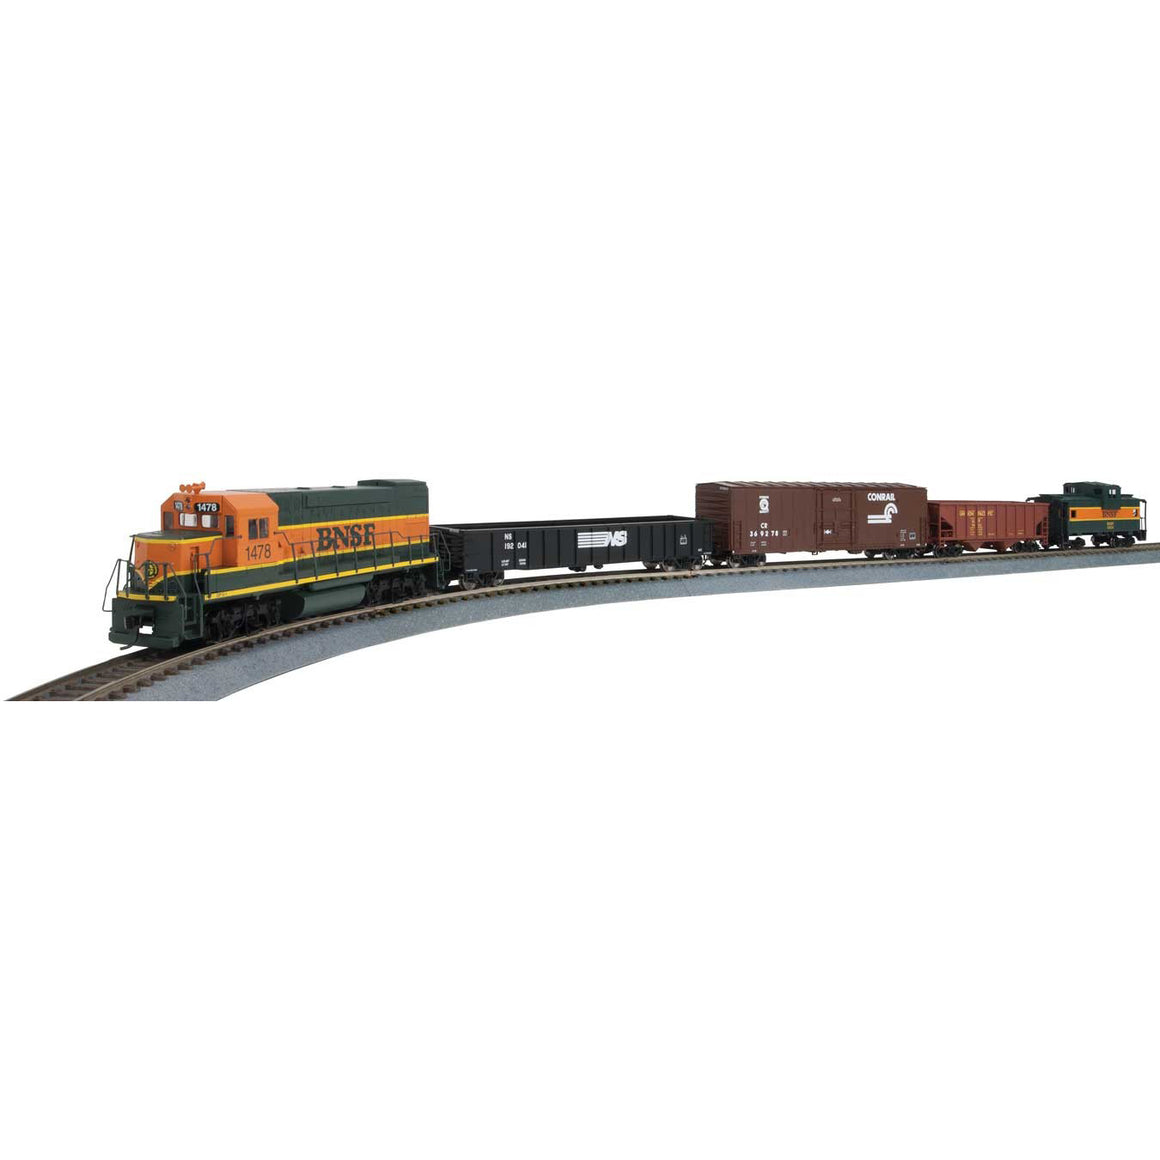 HO Scale: Train Set - WiFlyer Express - DCC & Sound - BNSF